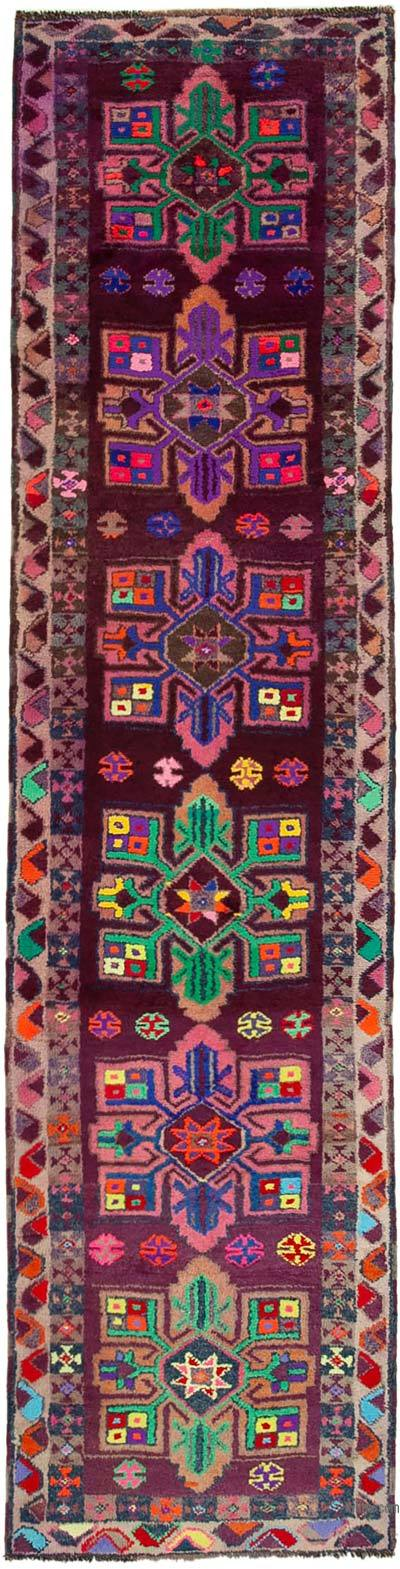 "Vintage Turkish Runner Rug - 3' 3"" x 12' 8"" (39 in. x 152 in.)"